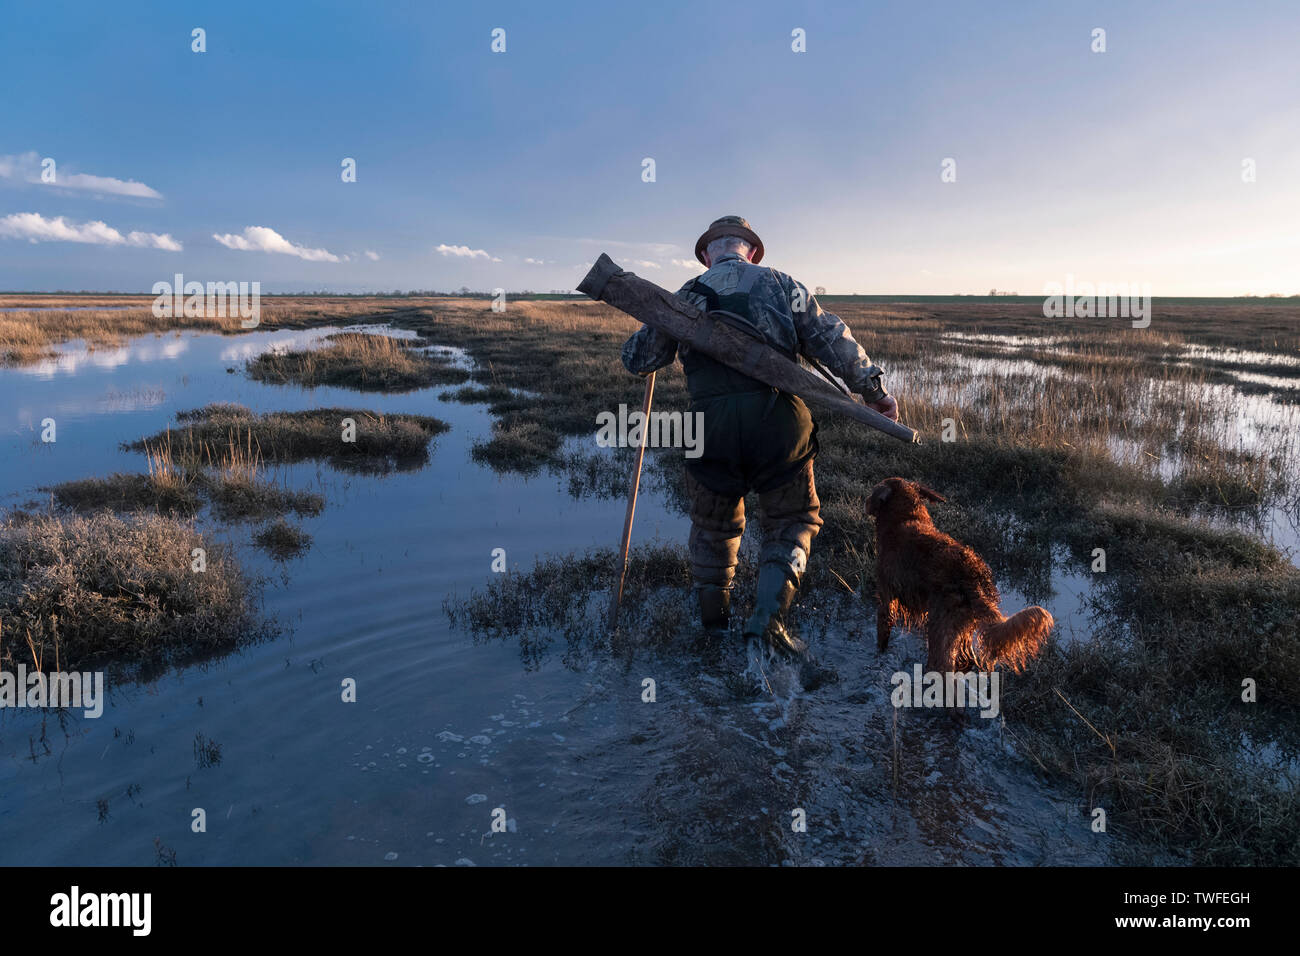 Wildfowling on the Lincolnshire Wash with shooter and gundog walking through the marshes with evening golden hour light as the sun sets. - Stock Image